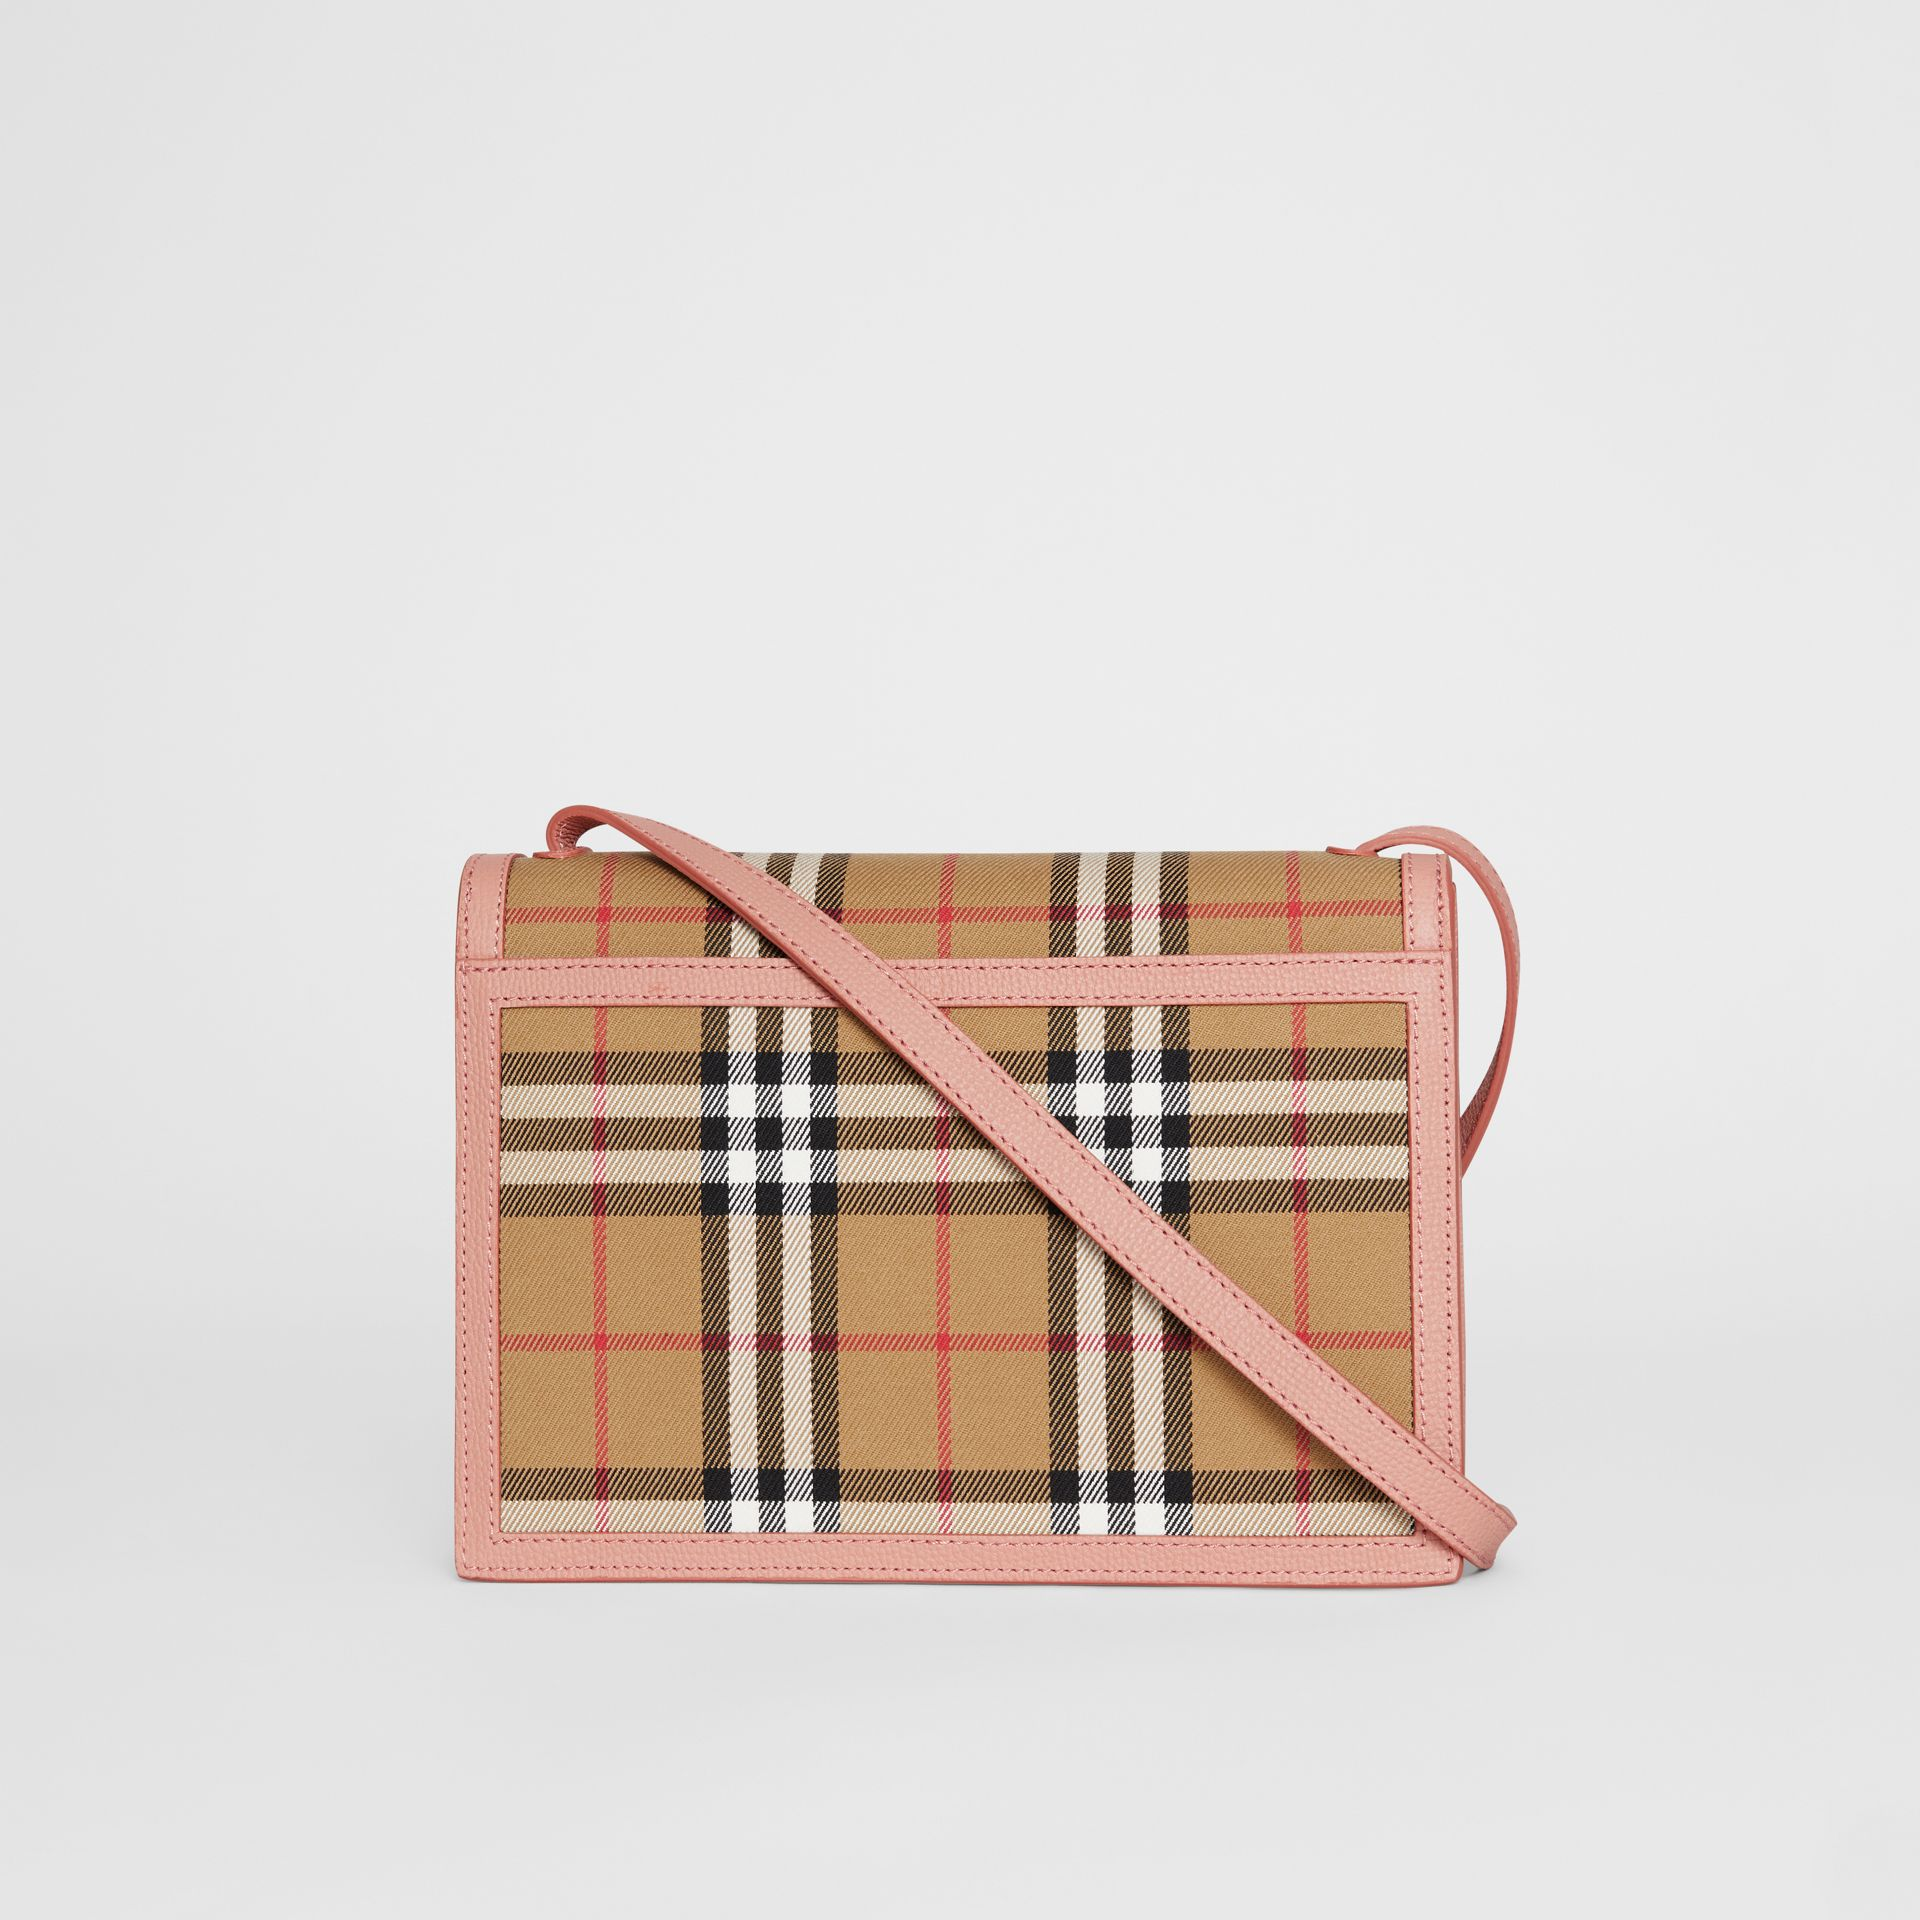 Small Vintage Check and Leather Crossbody Bag in Ash Rose - Women | Burberry - gallery image 7